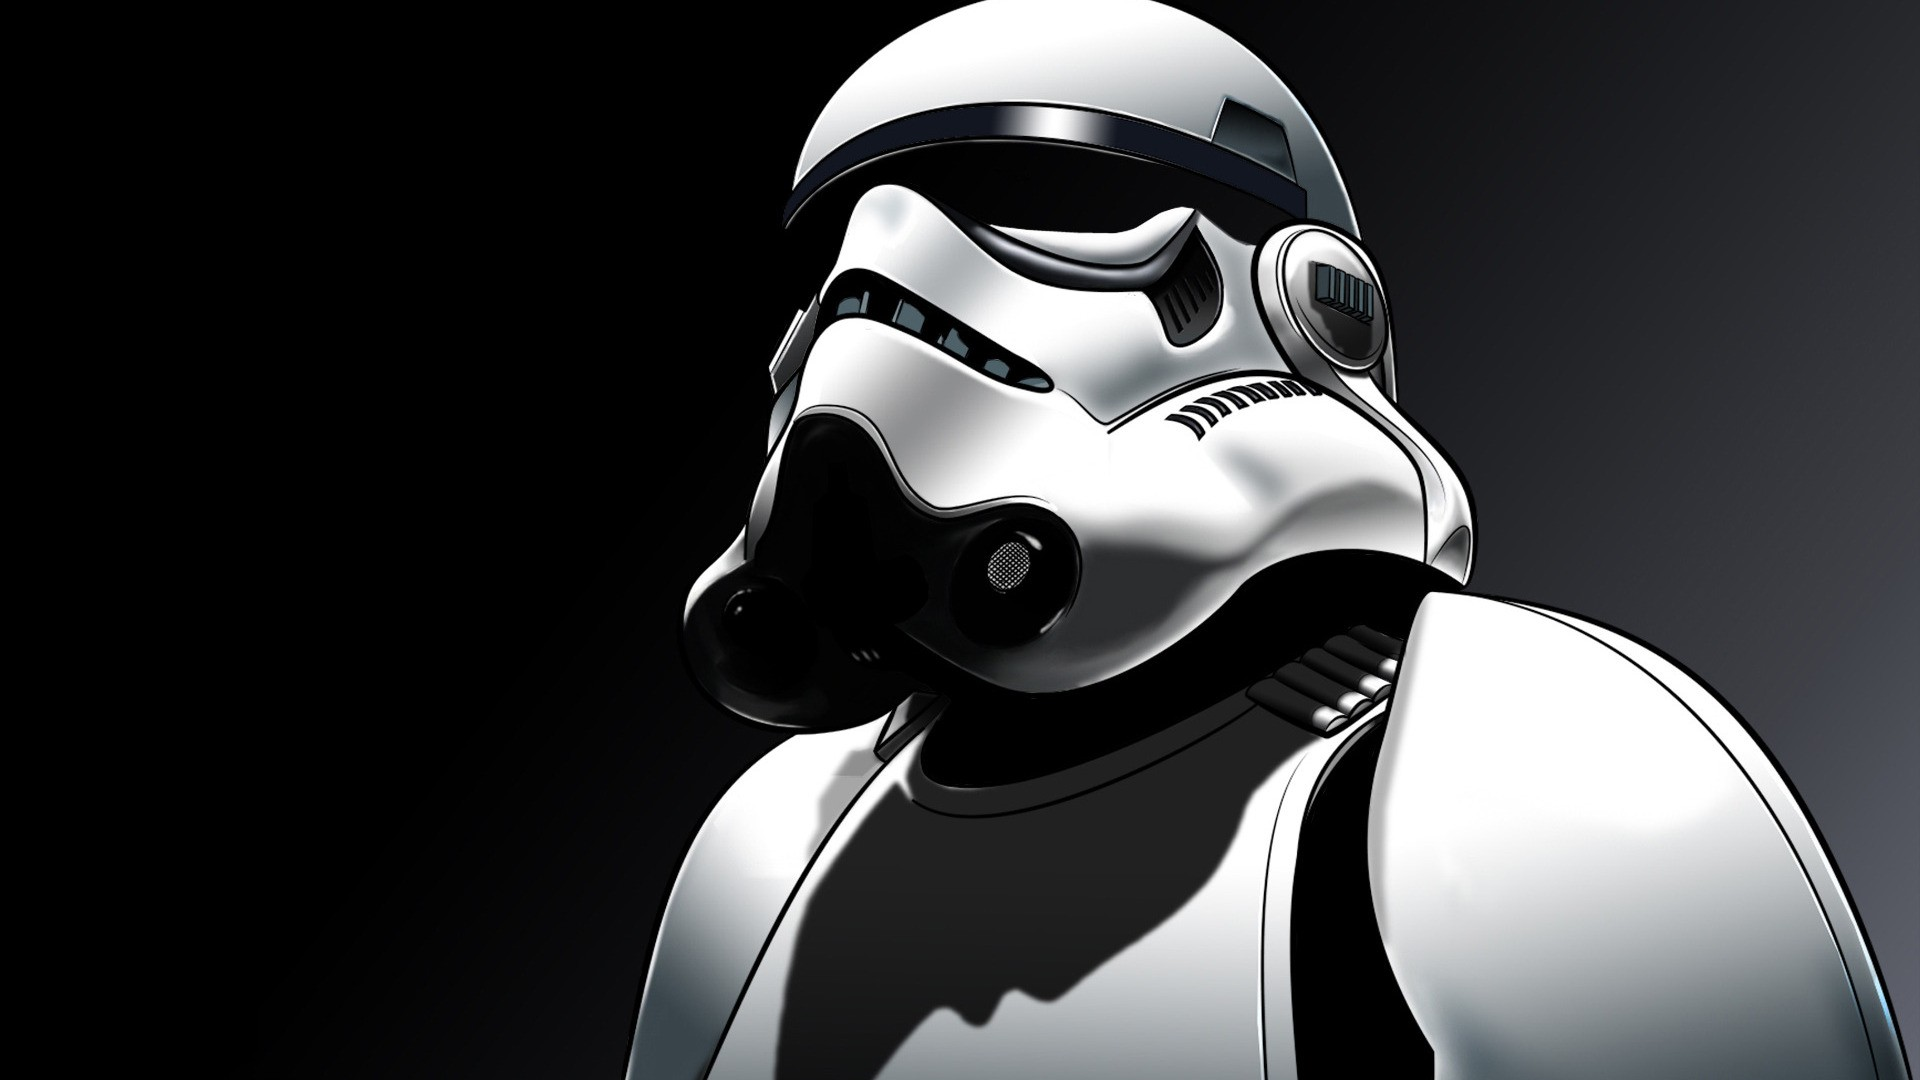 1920x1080 Star Wars wallpaper 1920x1080